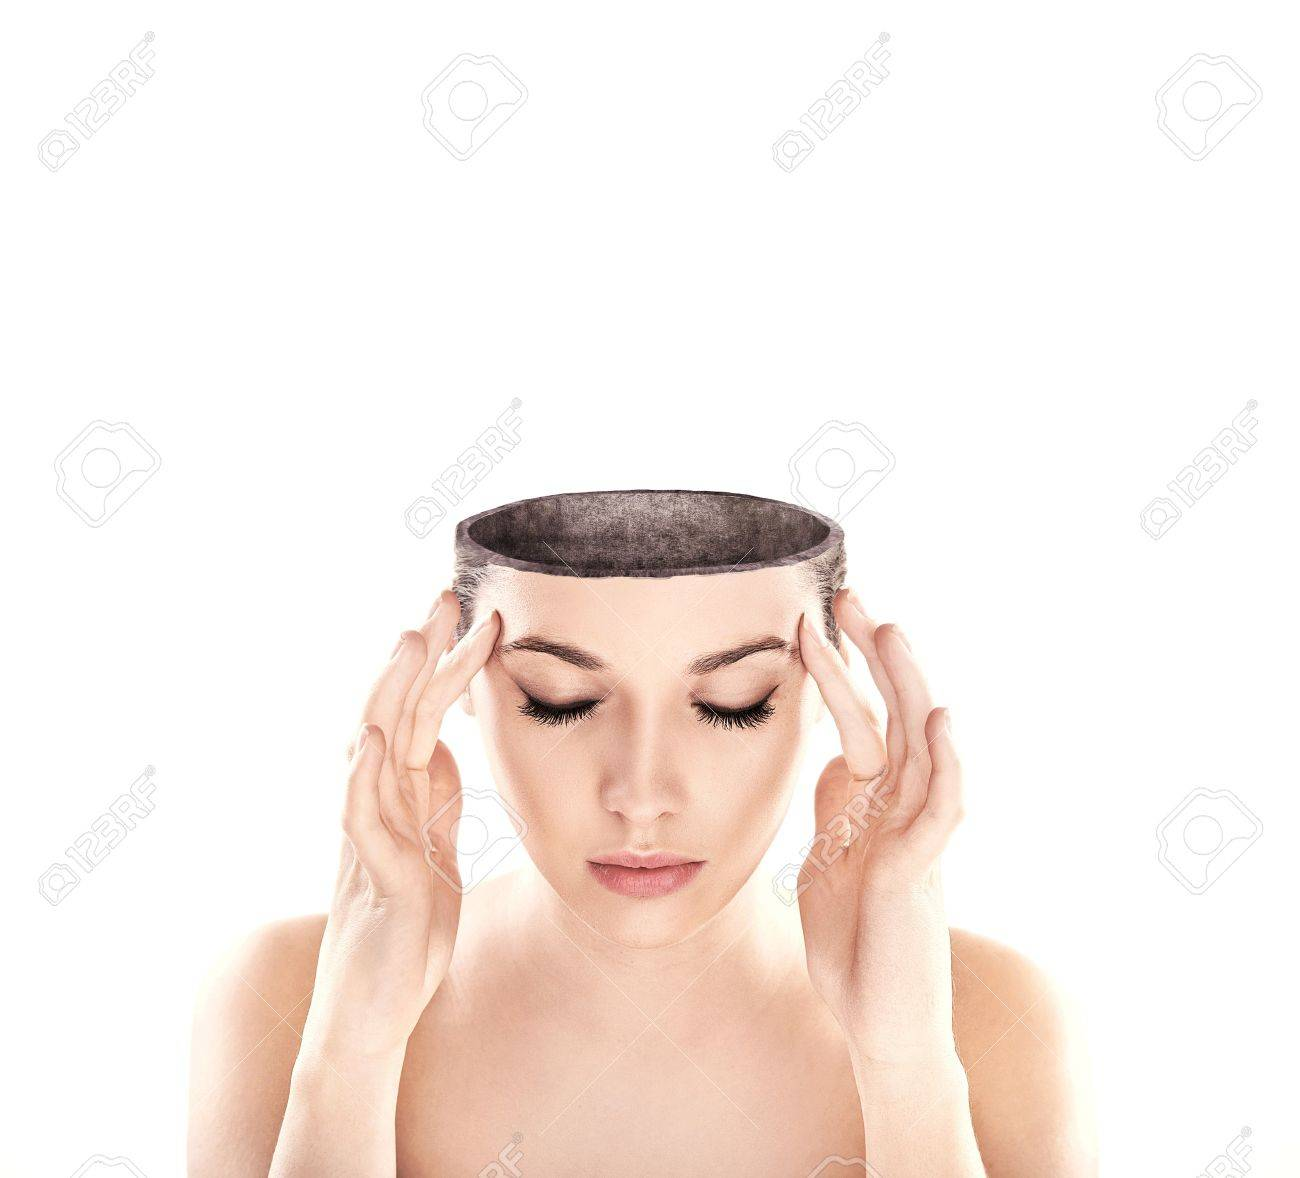 Conceptual image of a open minded woman , lots of copy space Stock Photo - 9234676